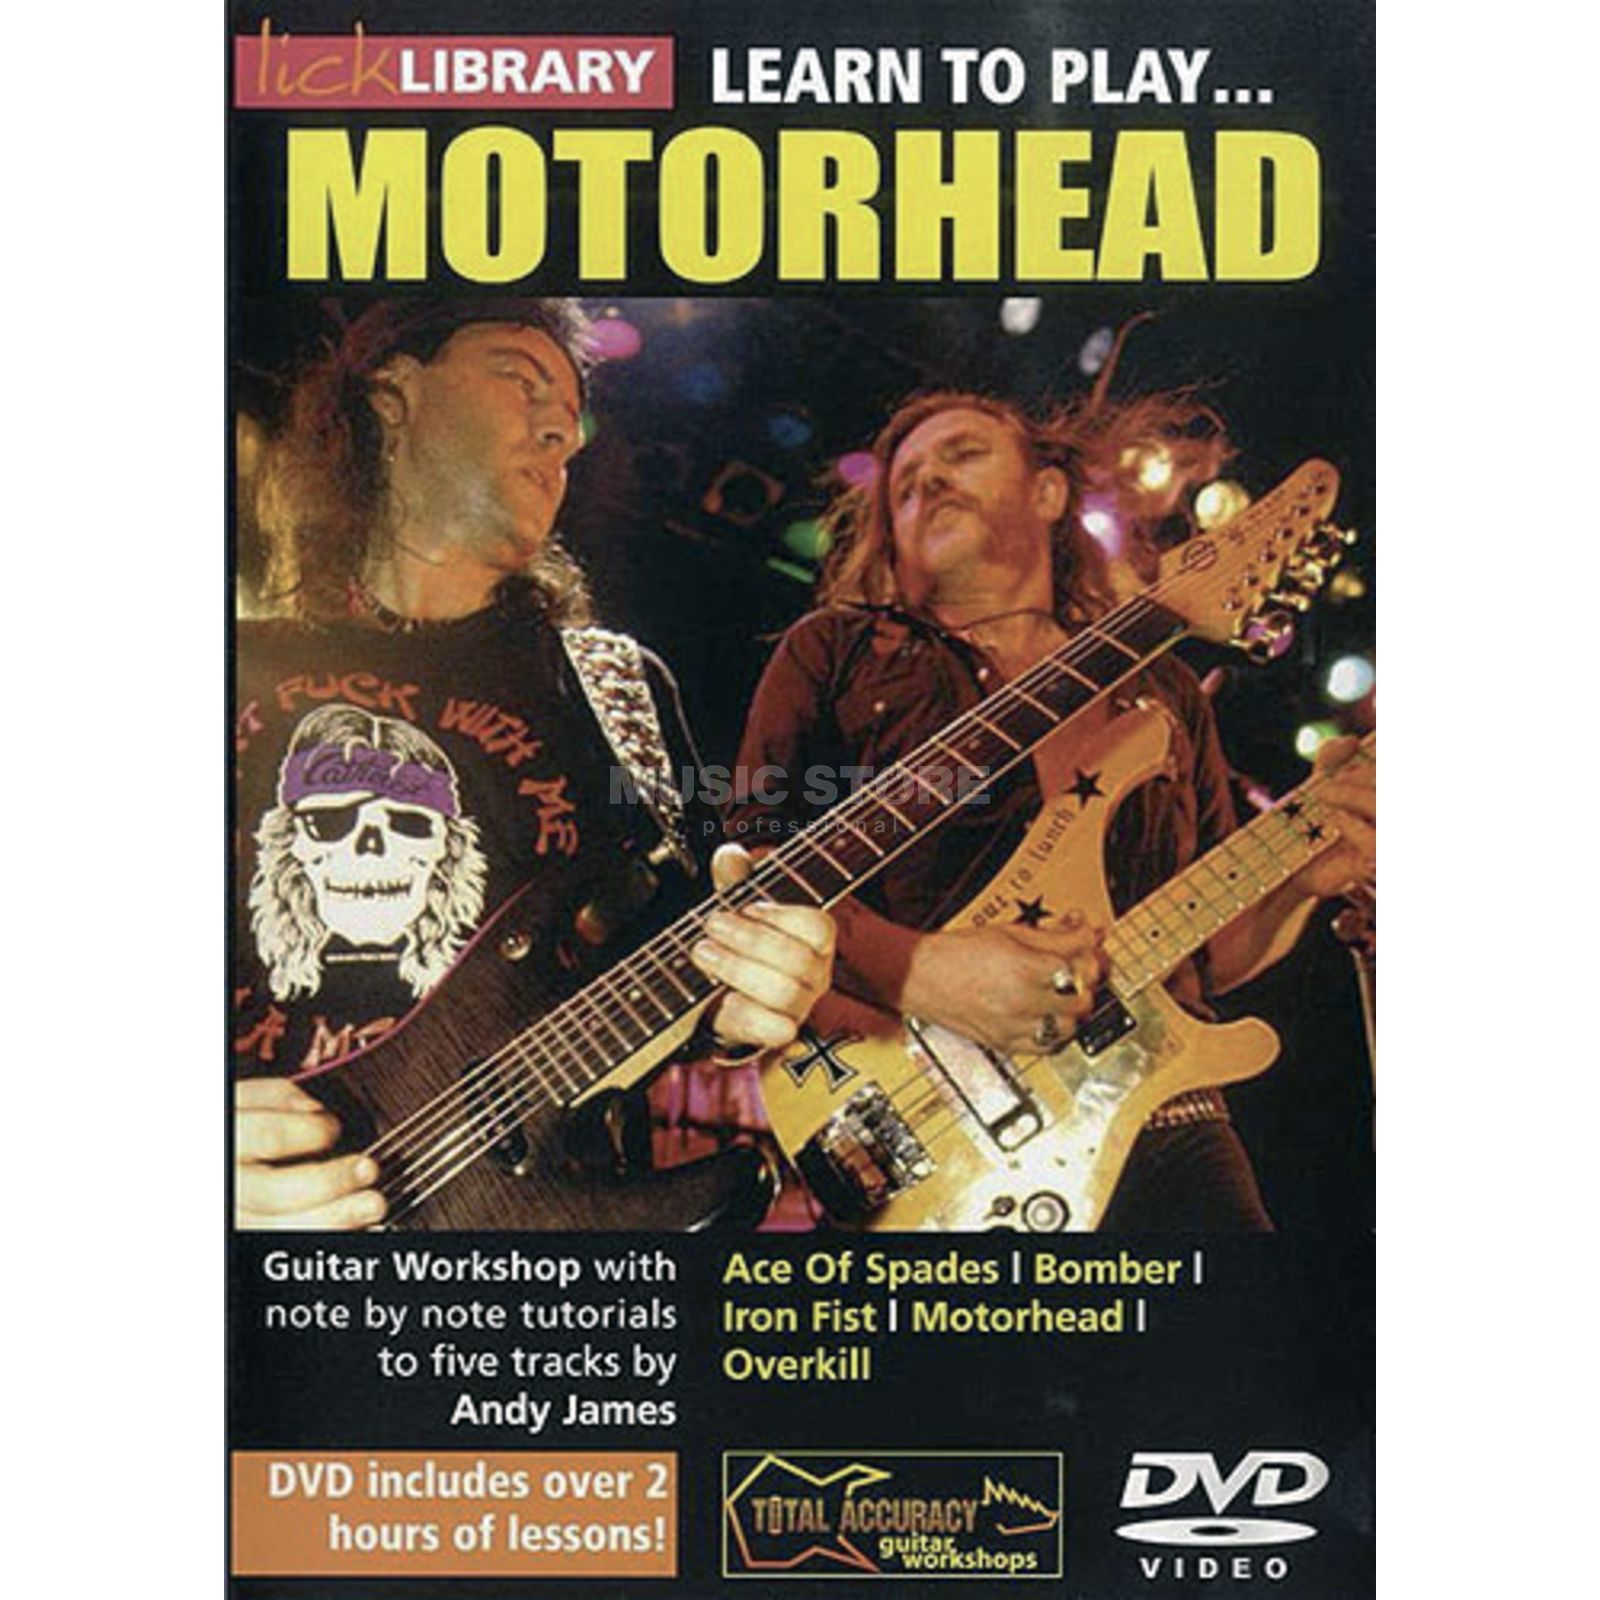 Roadrock International Lick Library: Learn To Play Motorhead DVD Produktbild